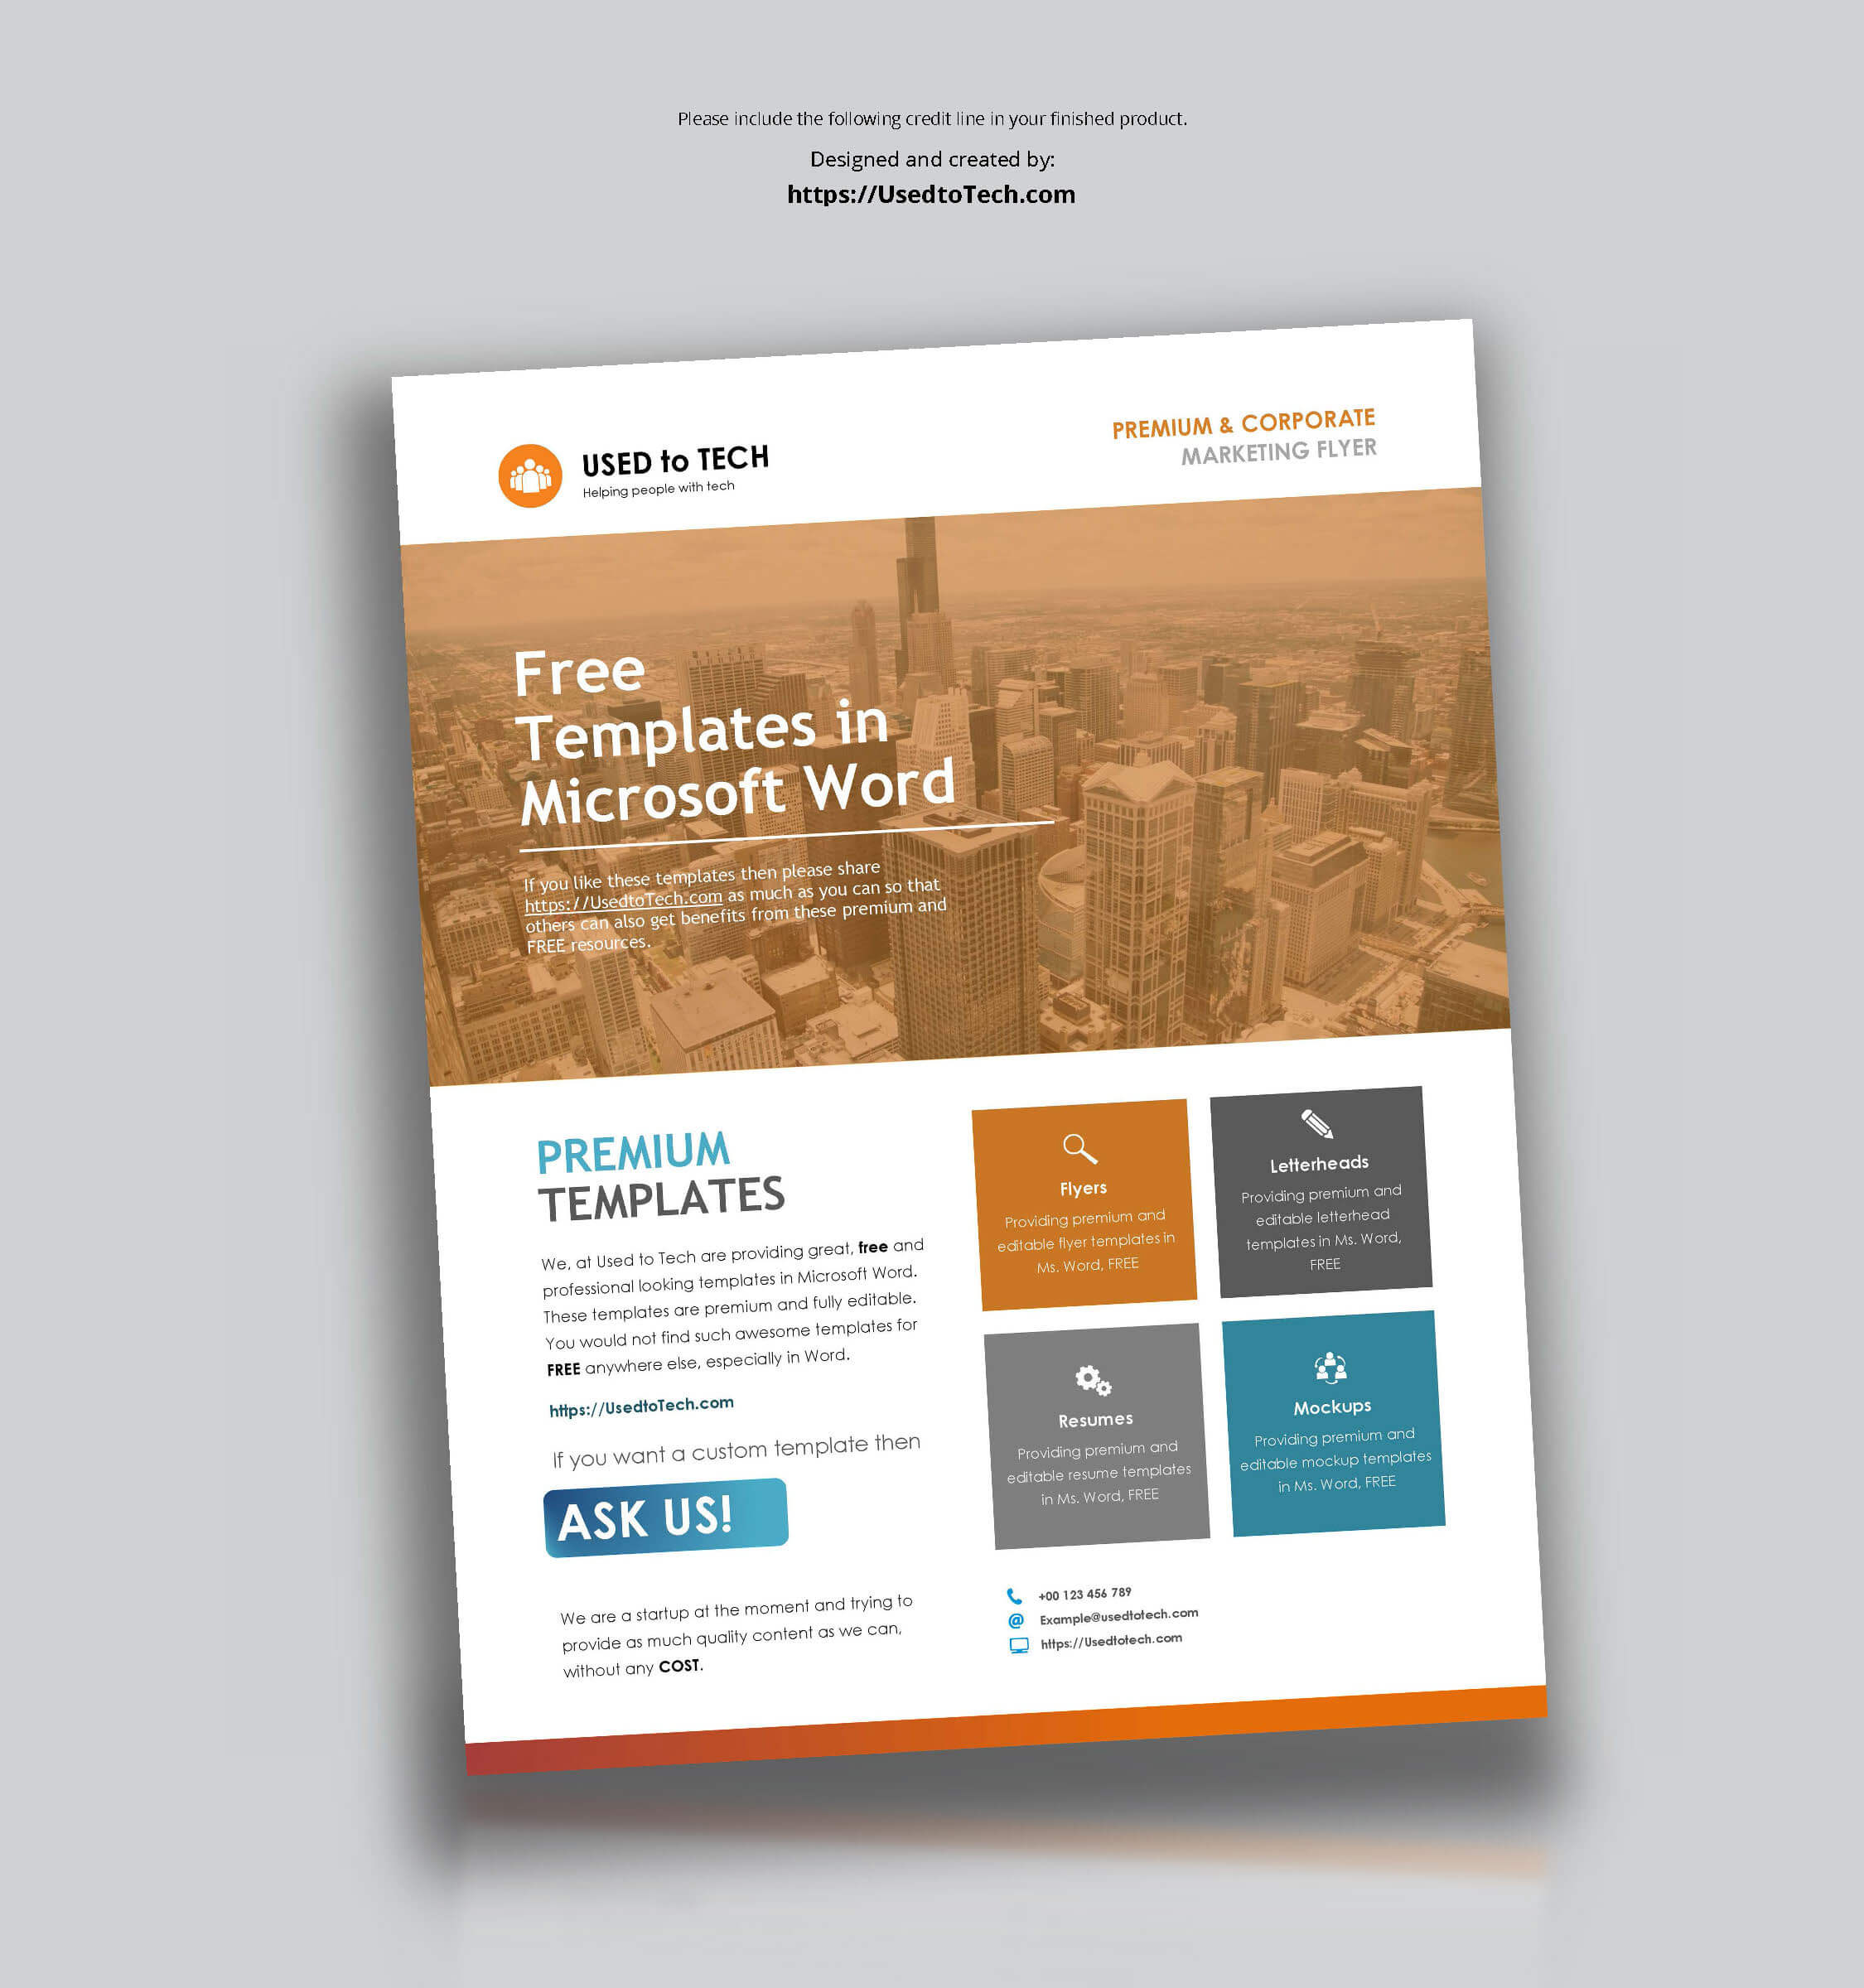 001 Corporate Flyer Template In Word Free Templates For Throughout Templates For Flyers In Word